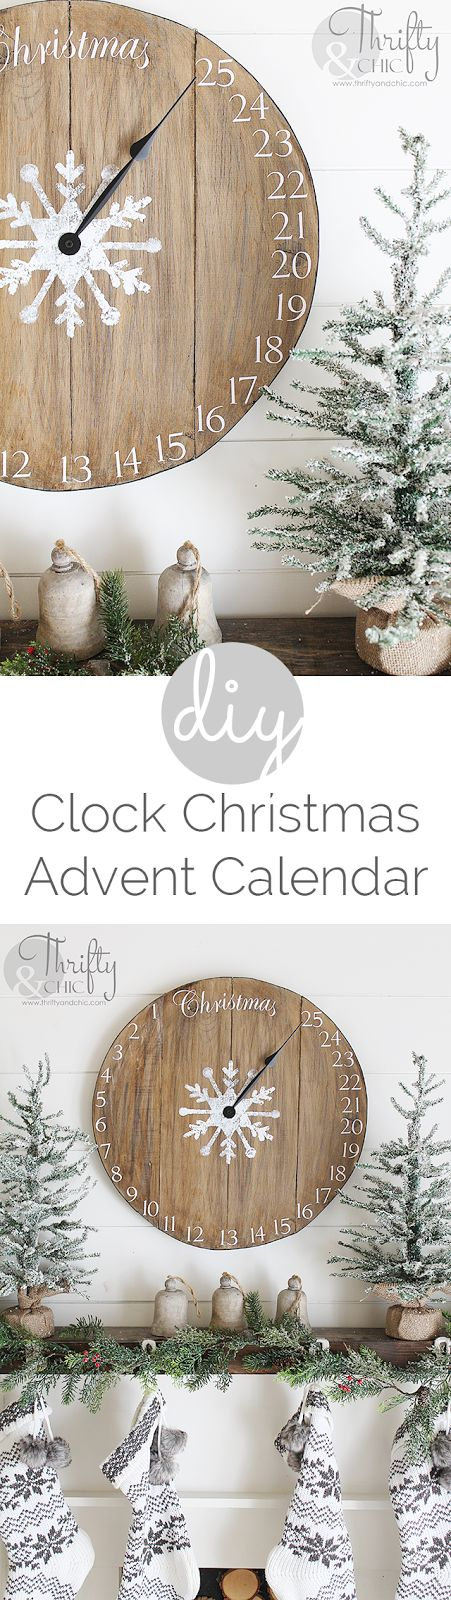 Super cool idea and very different as well. And the main, it is very simple to make and for sure, your advent calendar will differ from others.